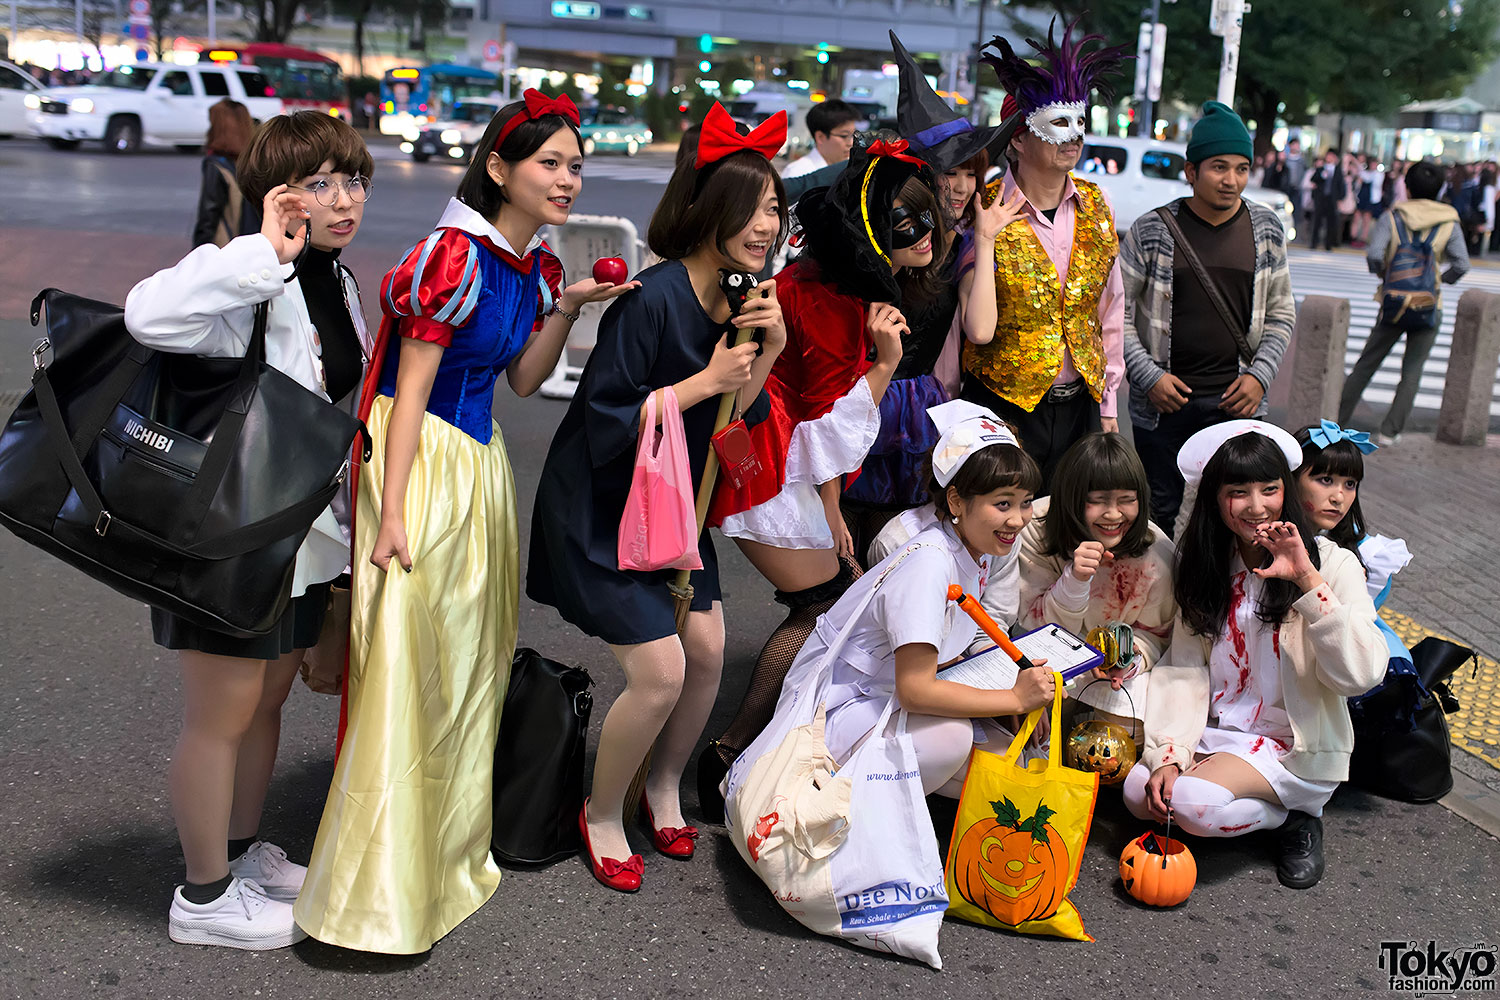 how to say halloween costume in japanese